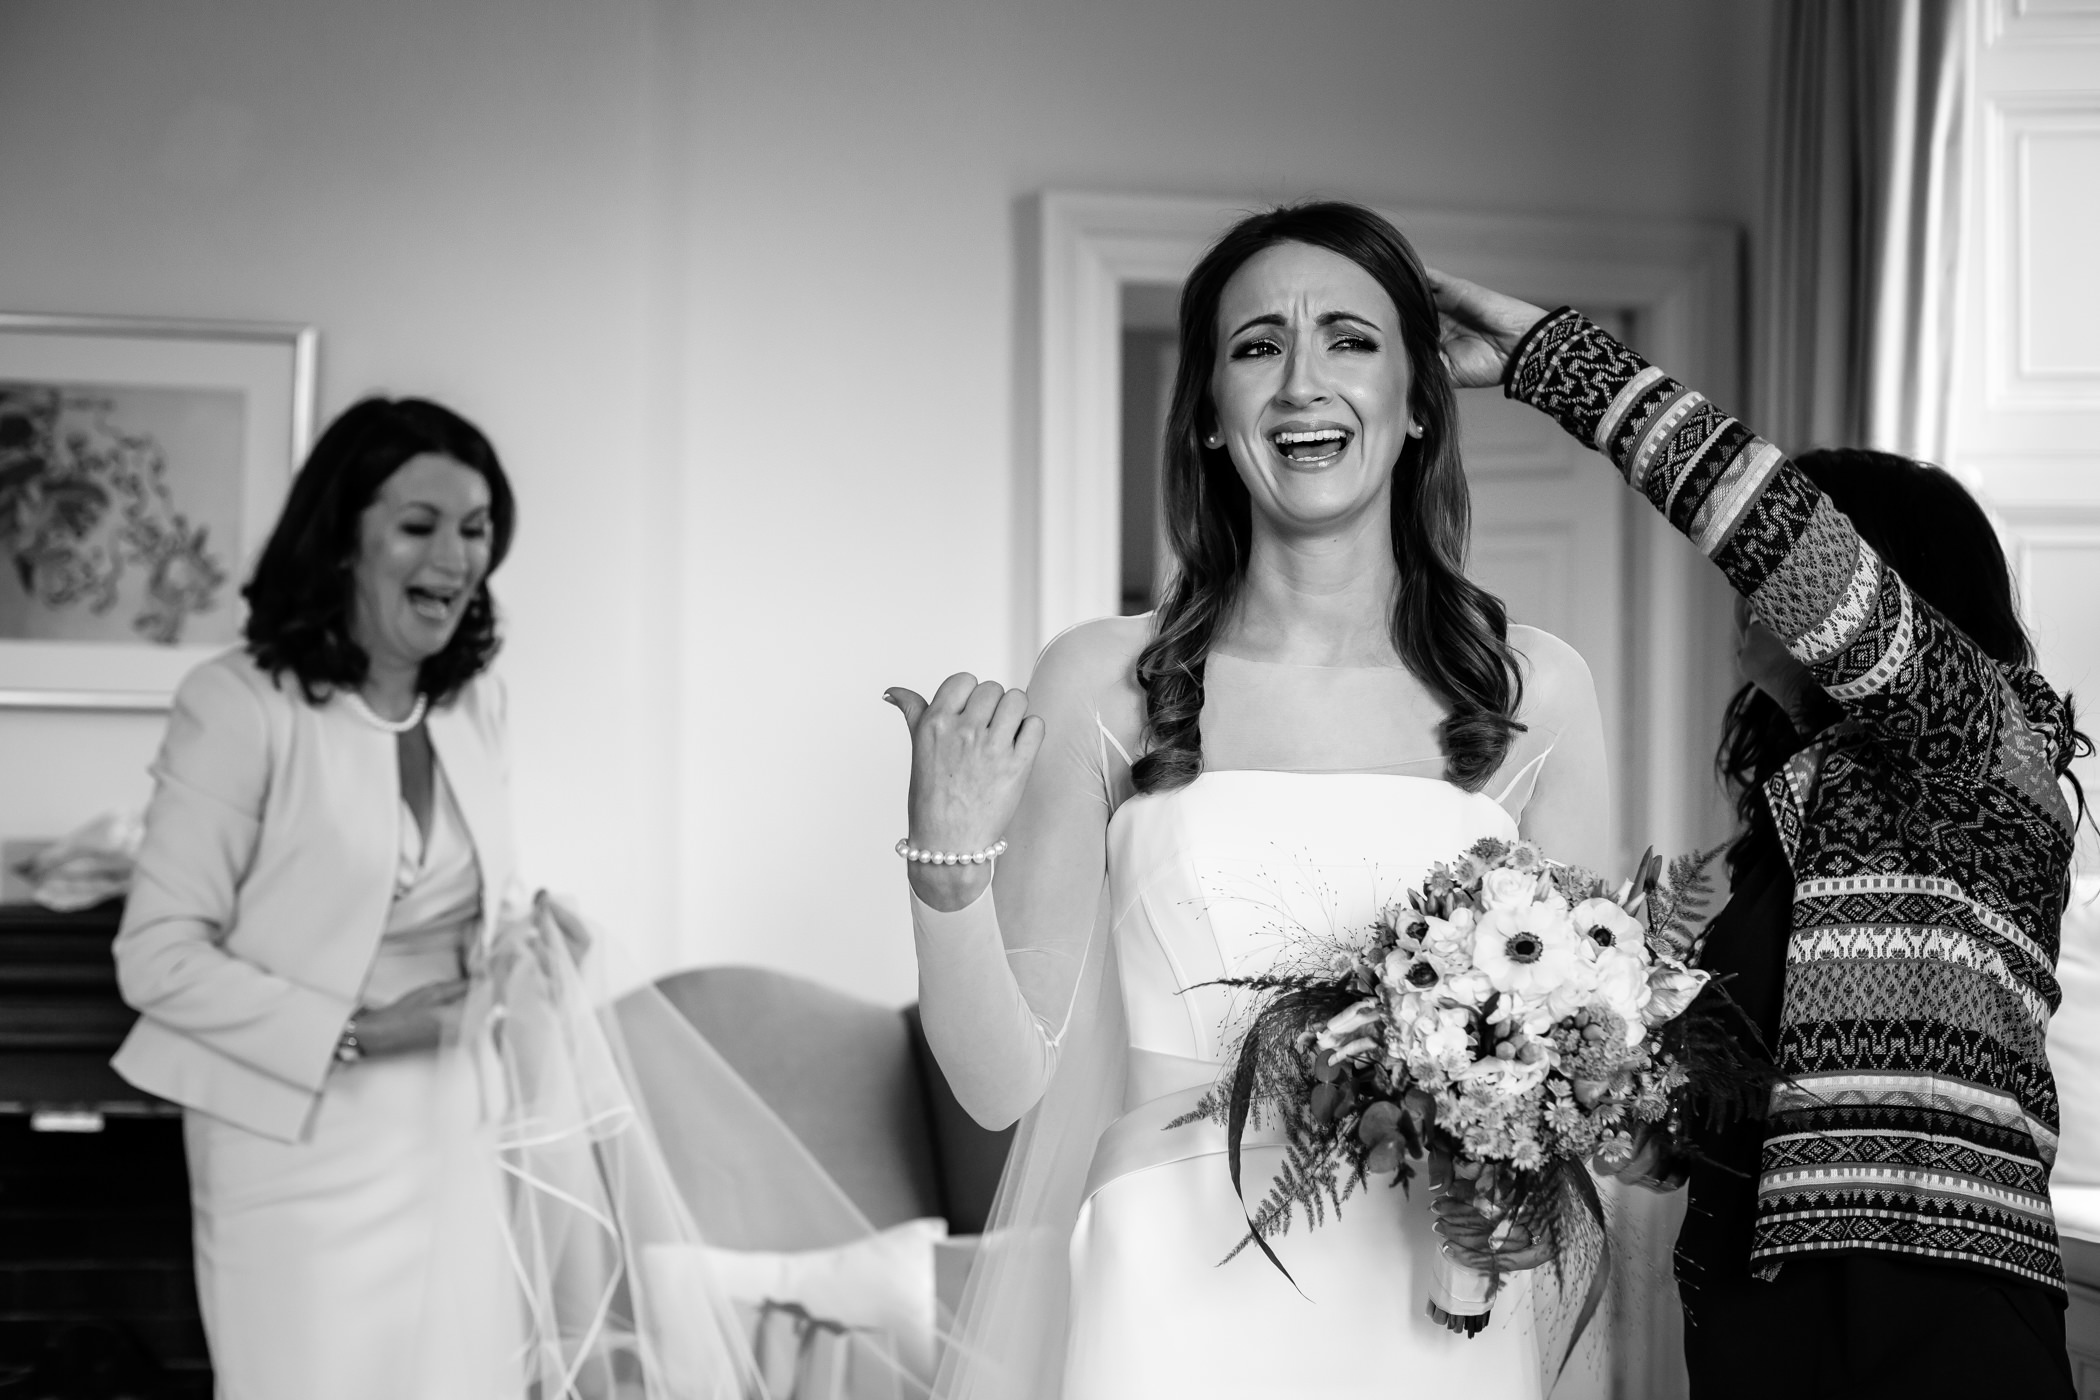 Isobel & Karl - Sansom Photography - Kilshane House Wedding Ireland-47